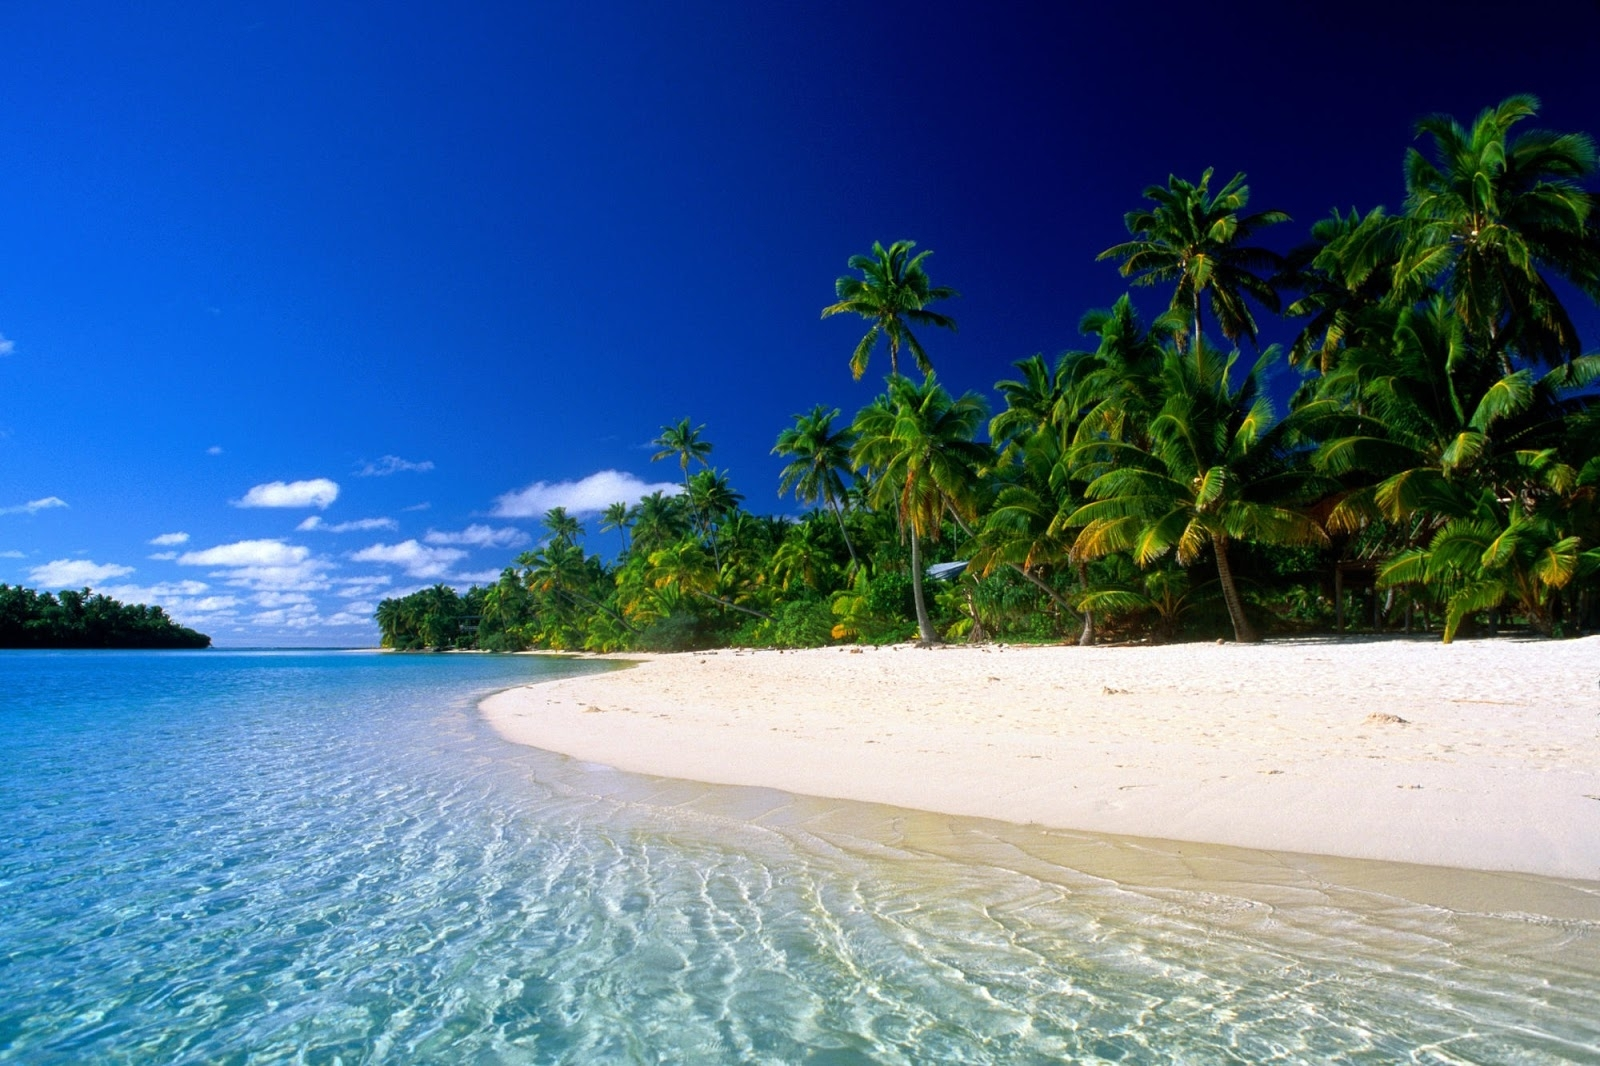 10 Top Most Beautiful Beaches In The World Wallpaper Full Hd 1080p